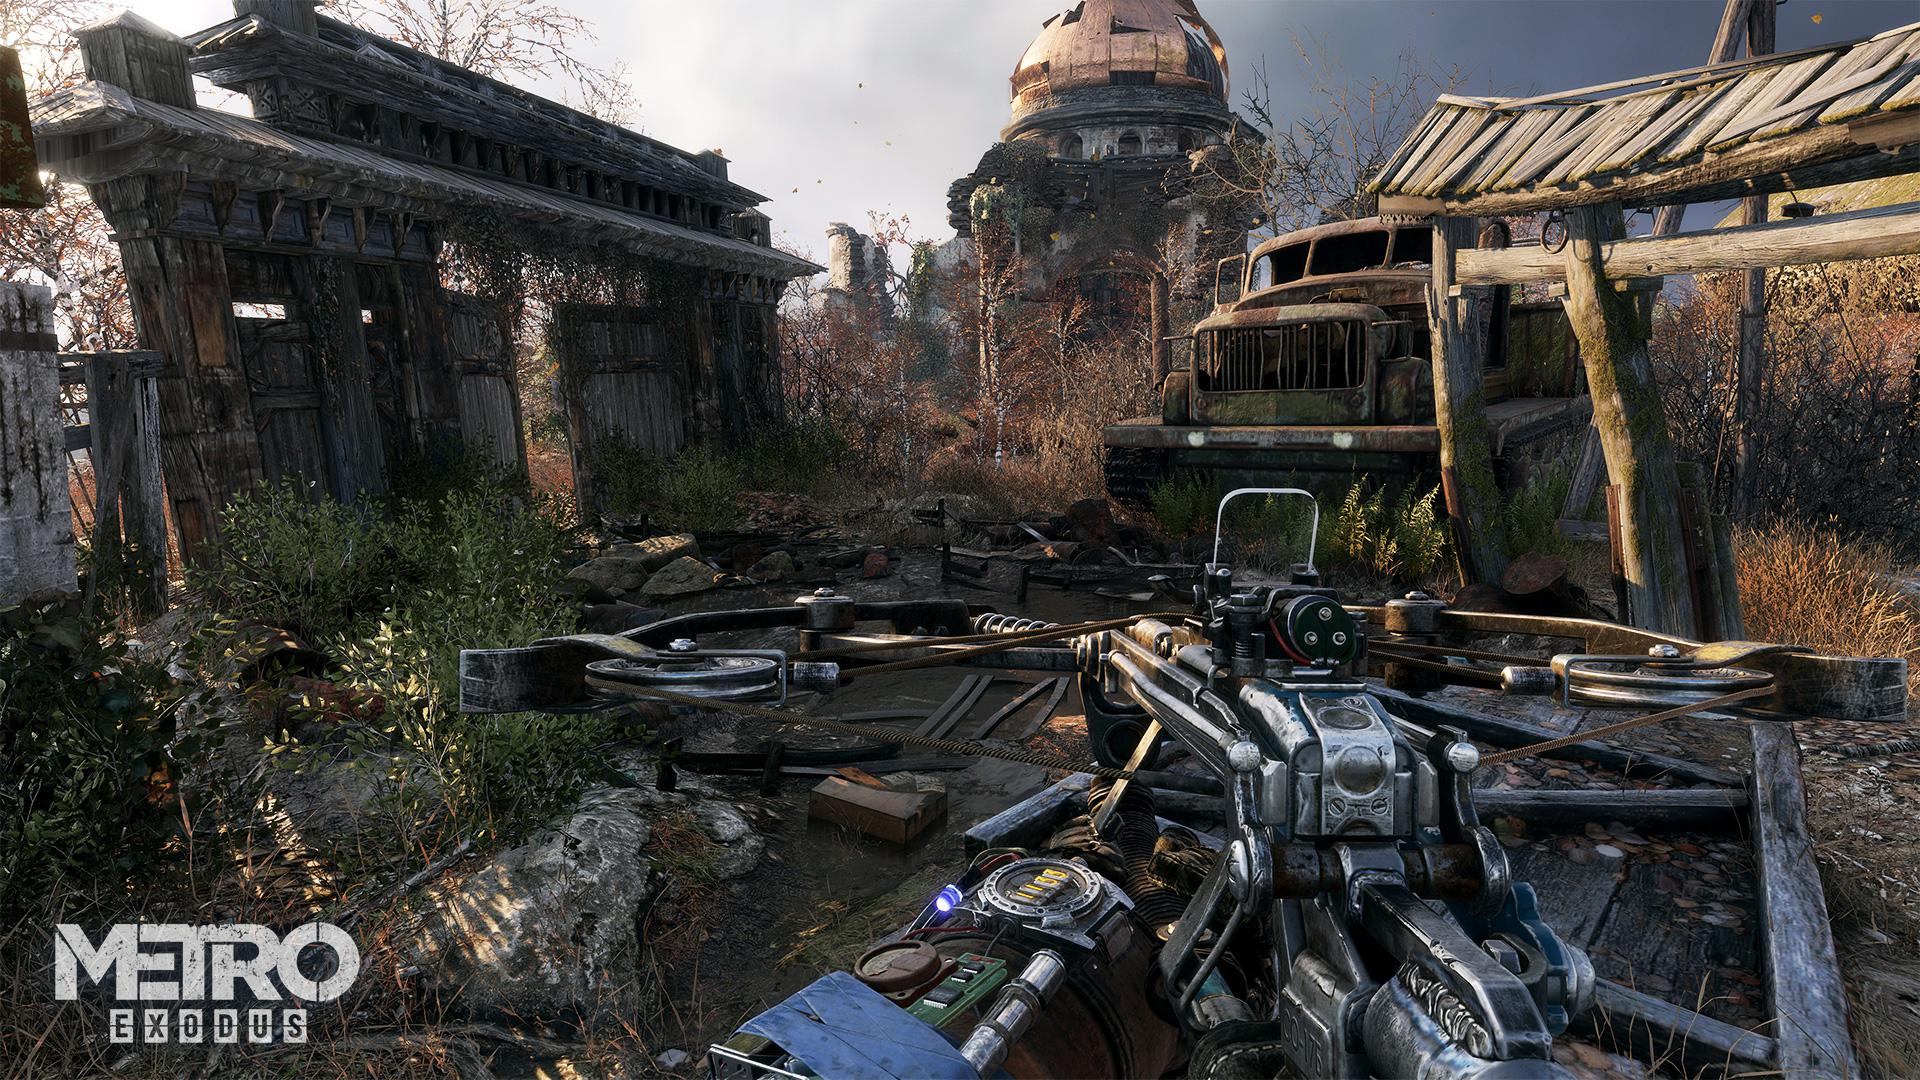 Metro Exodus, out later this year, will arguably look its best on the PC – if the previous games in the series are anything to go by